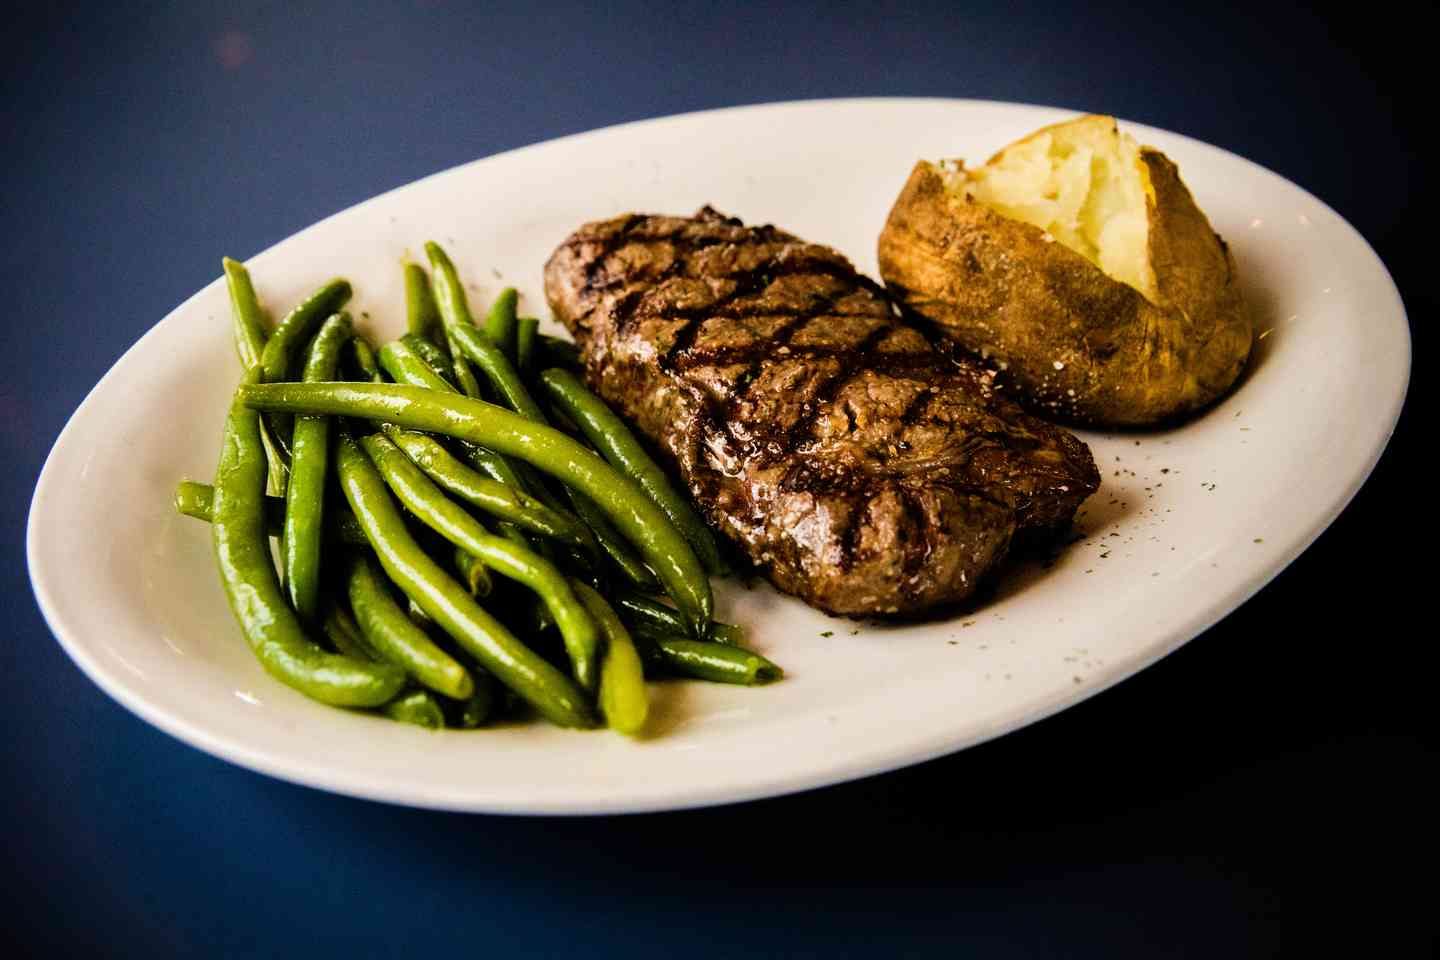 New York Strip Steak*